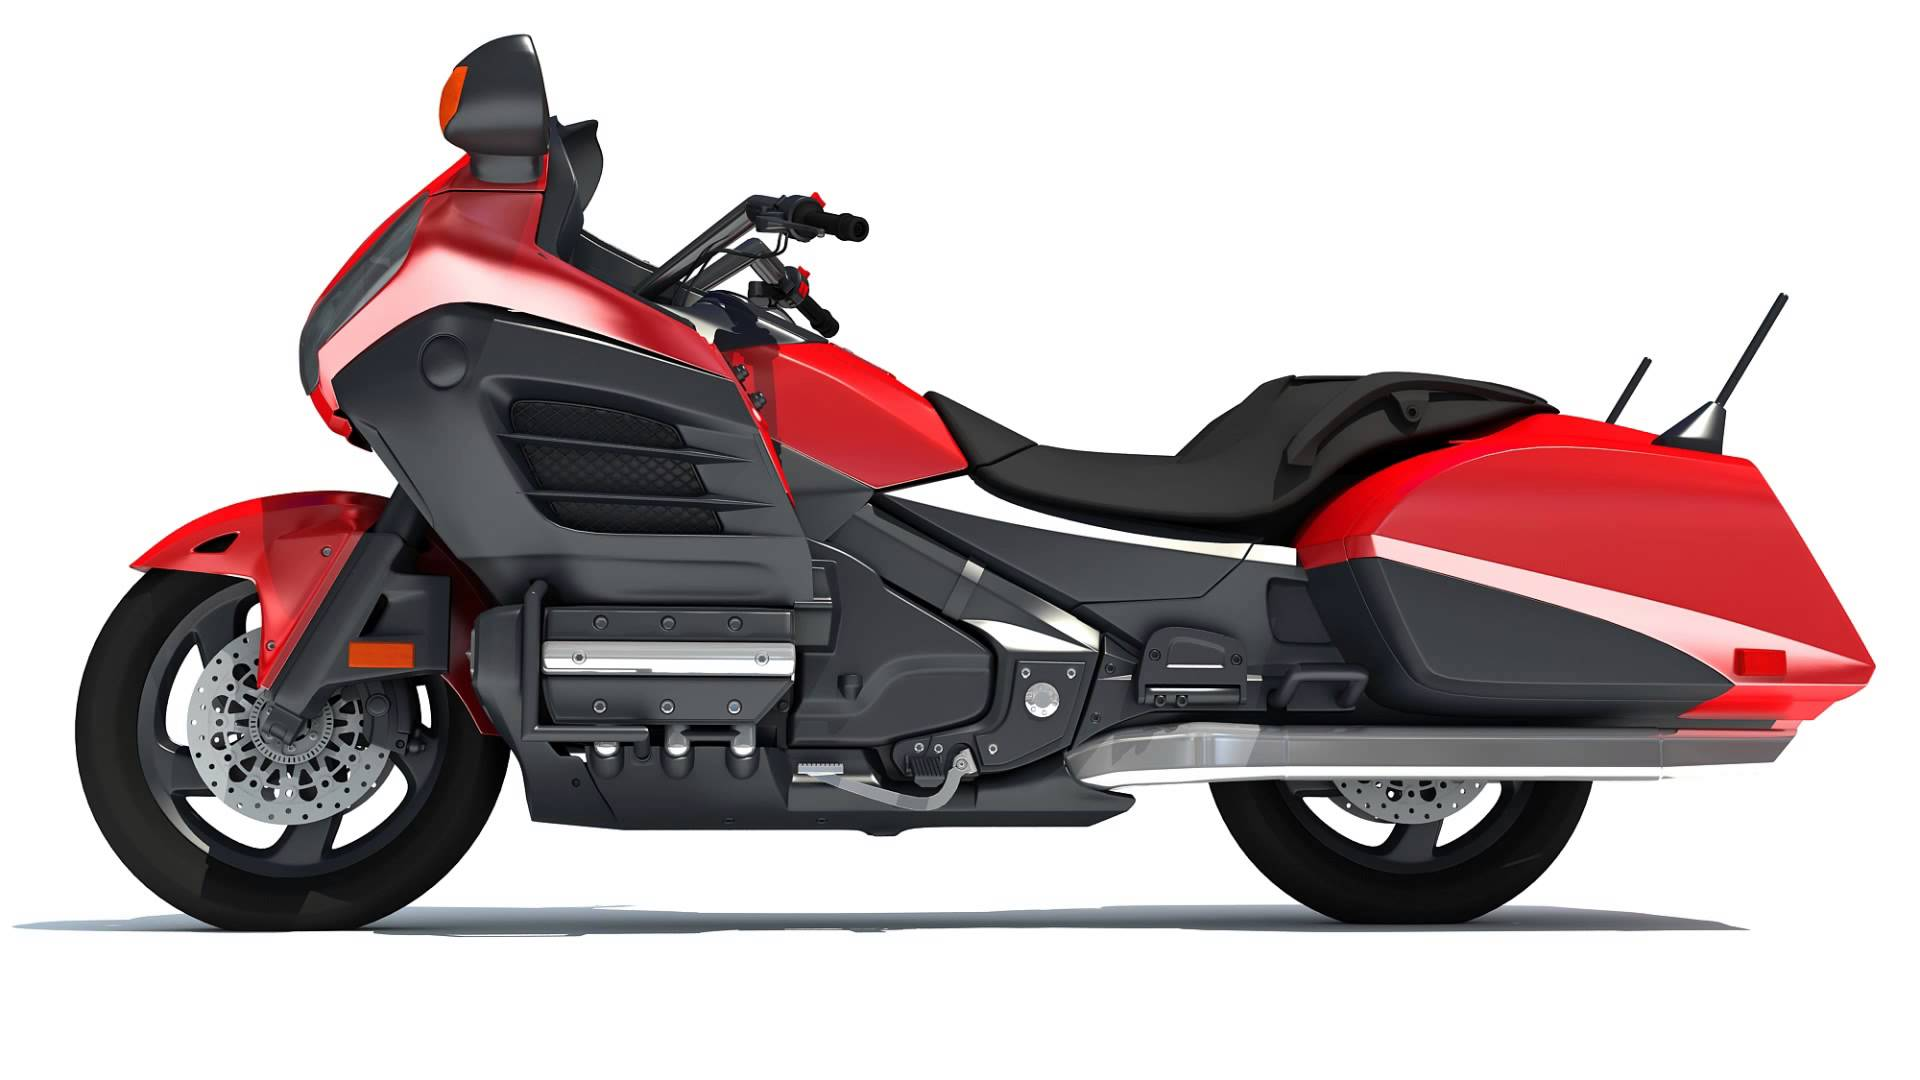 2014 honda gl 1800 gold wing valkyrie pics specs and information. Black Bedroom Furniture Sets. Home Design Ideas